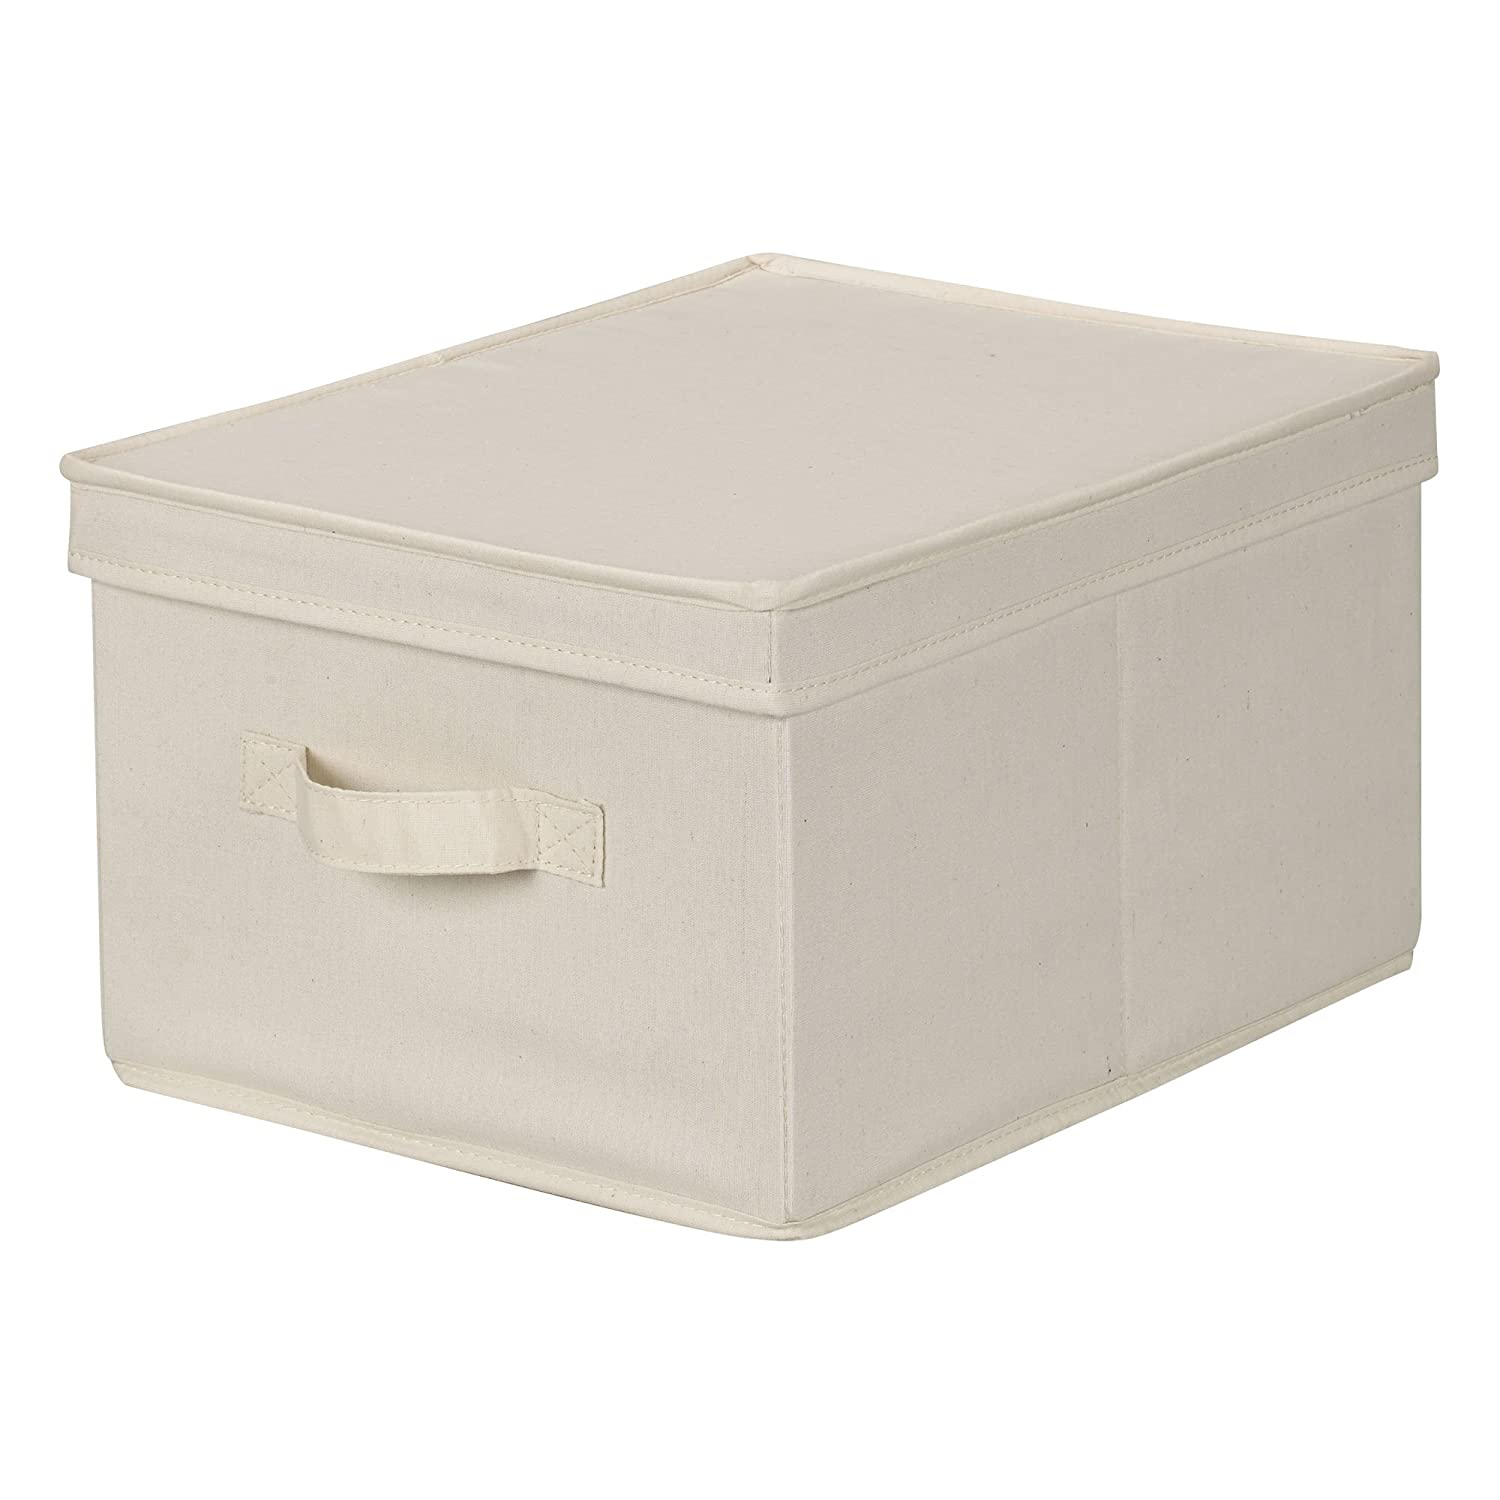 Amazoncom Household Essentials 113 Storage Box with Lid and Handle